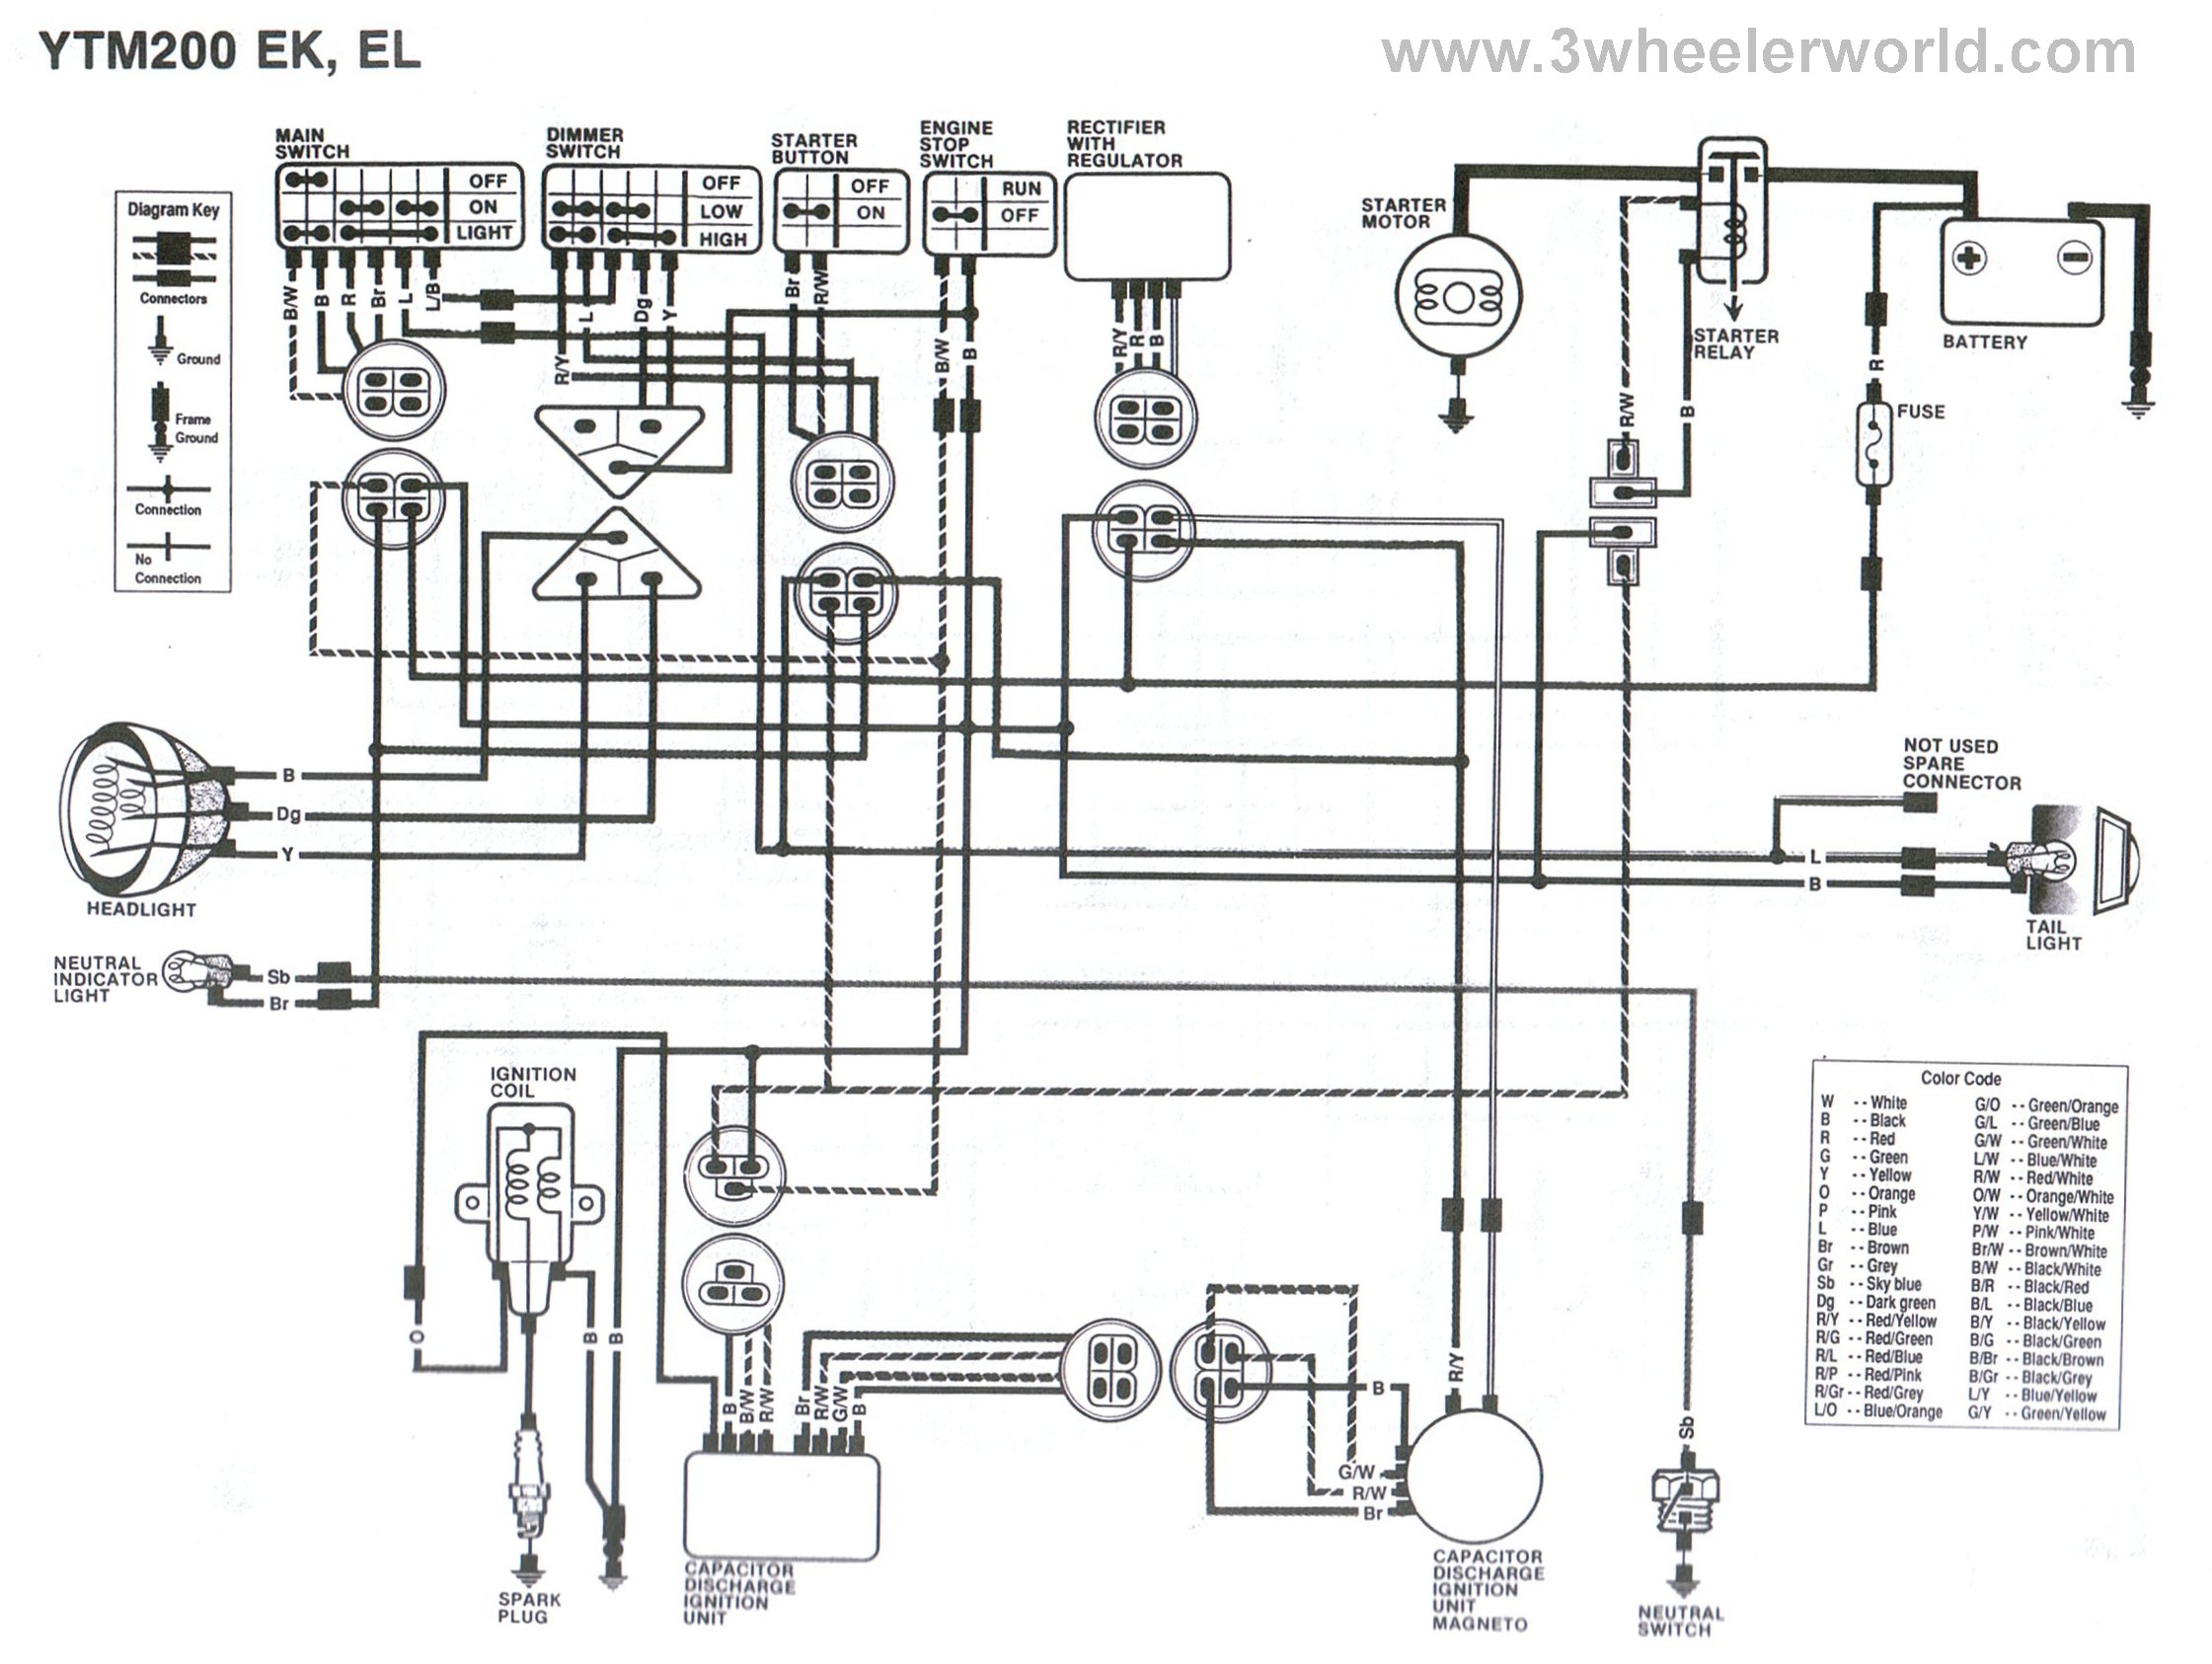 YTM200EKEL 3 wheeler world tech help yamaha wiring diagrams  at bakdesigns.co